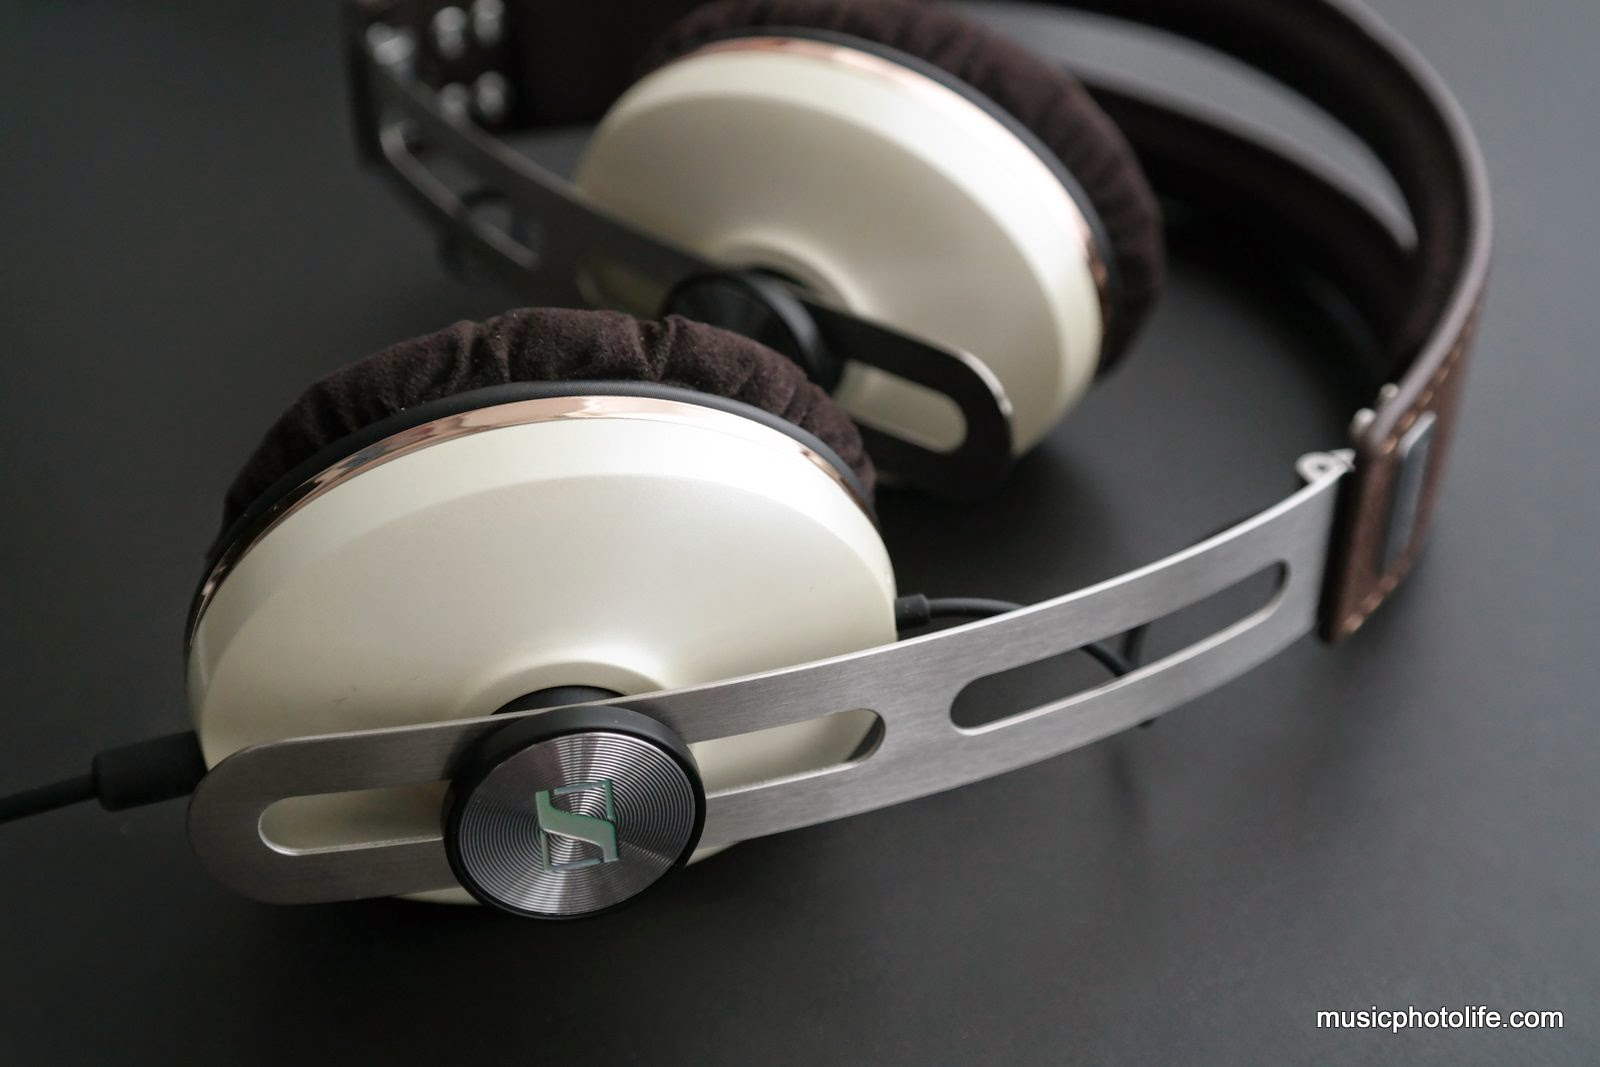 Sennheiser Momentum M2 On Ear Headphones Review Earphone Cx Sport As Collected The Pmx686 Sports From Me They Passed Another For My